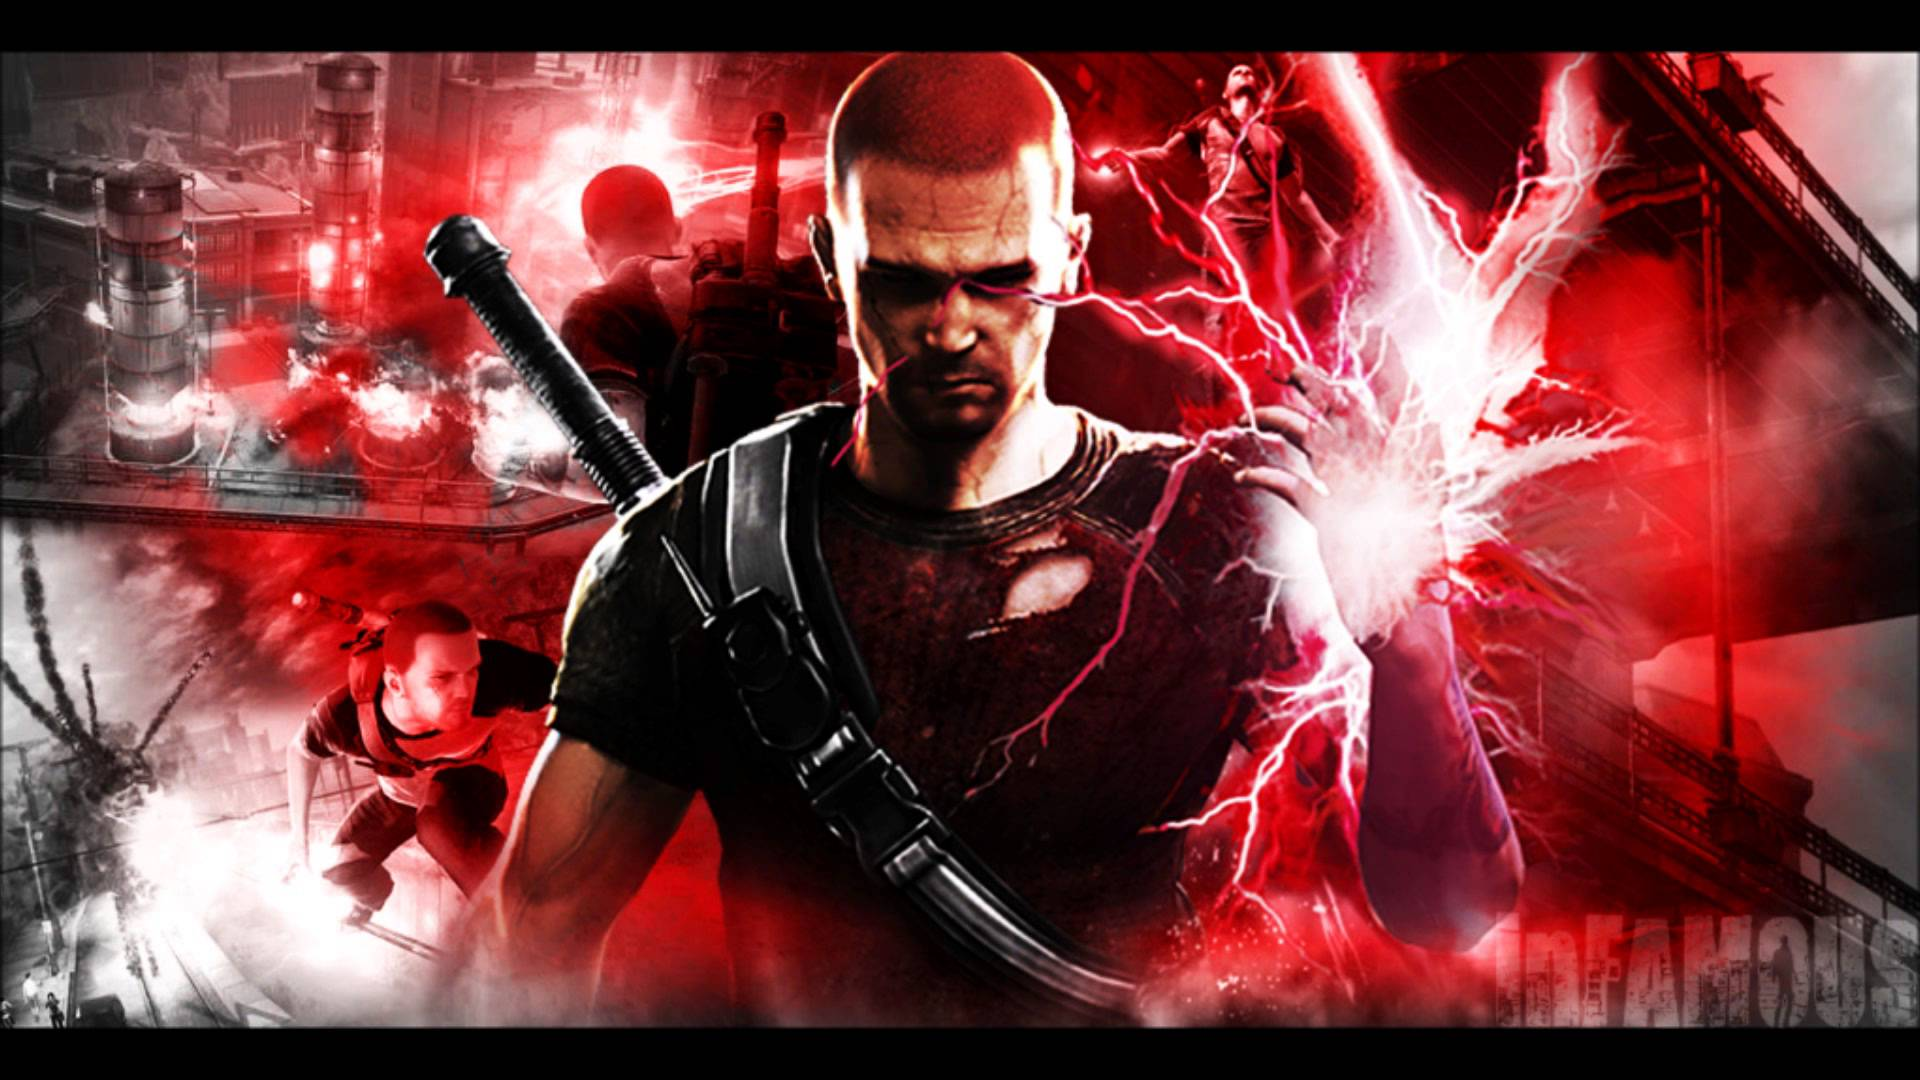 Infamous 2 Wallpapers - Top Free Infamous 2 Backgrounds ...